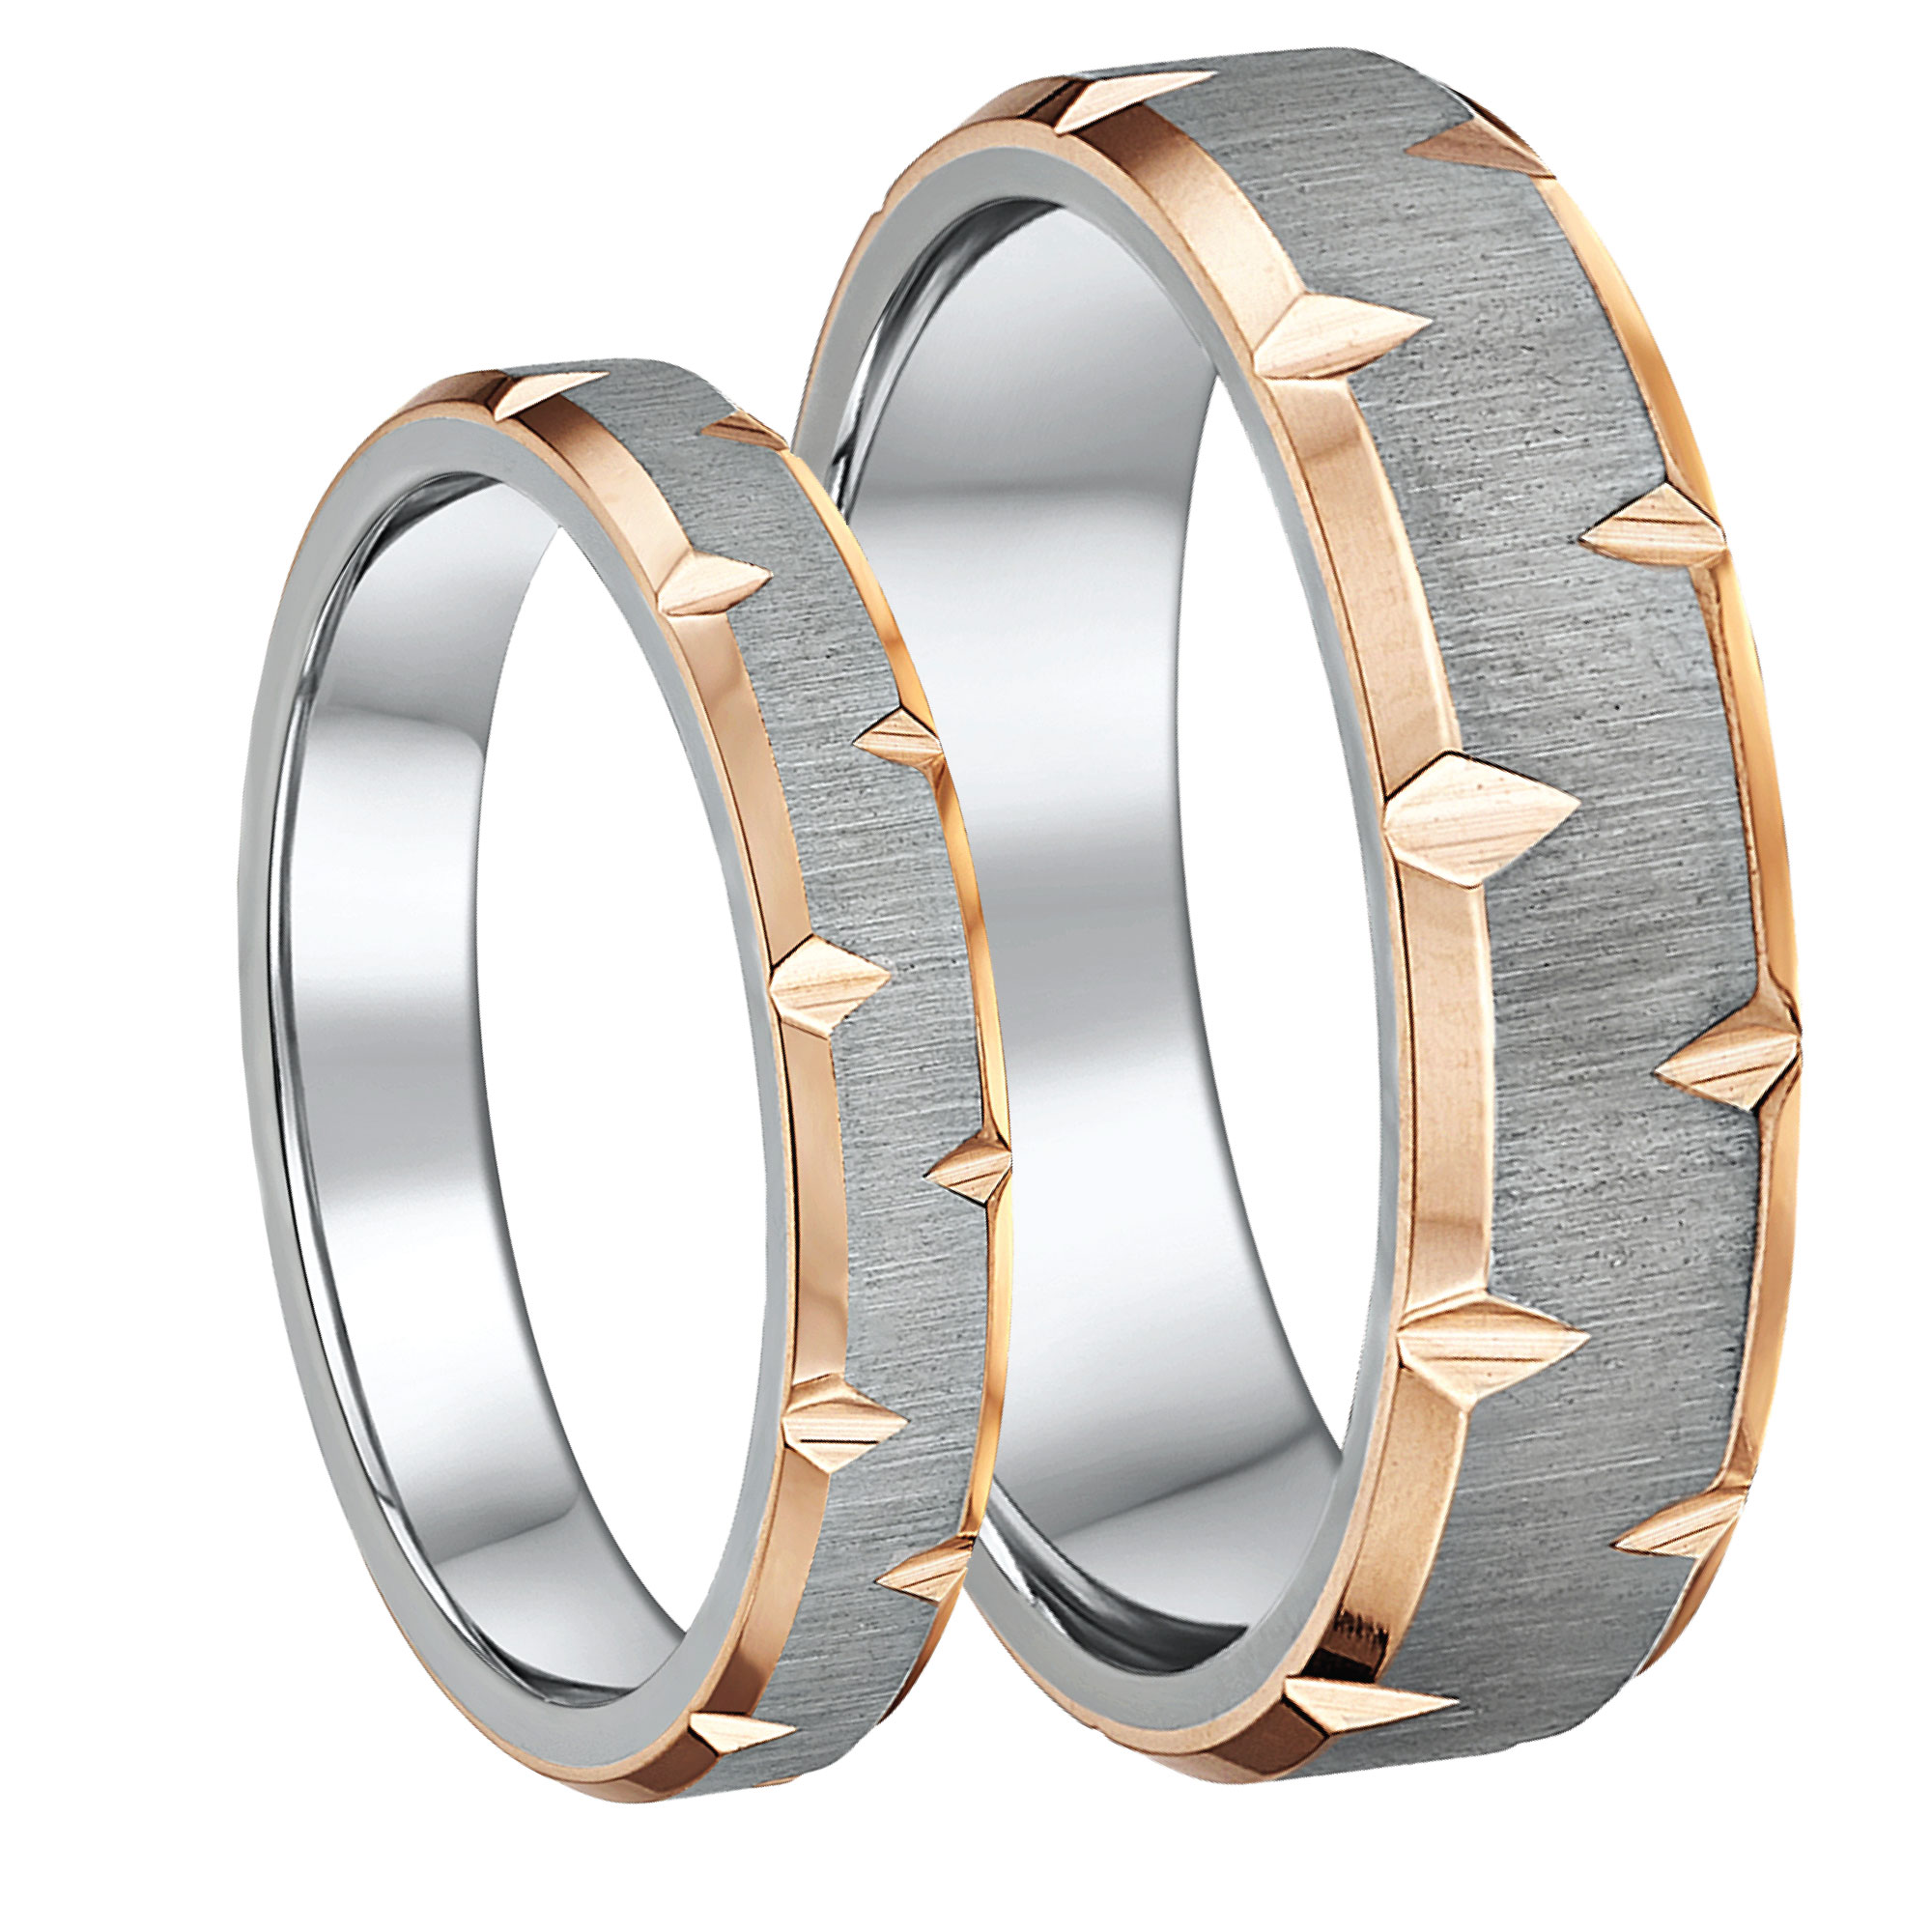 IP Rose Gold Edged Titanium Wedding Rings 4&6mm His & Hers Couples Rings